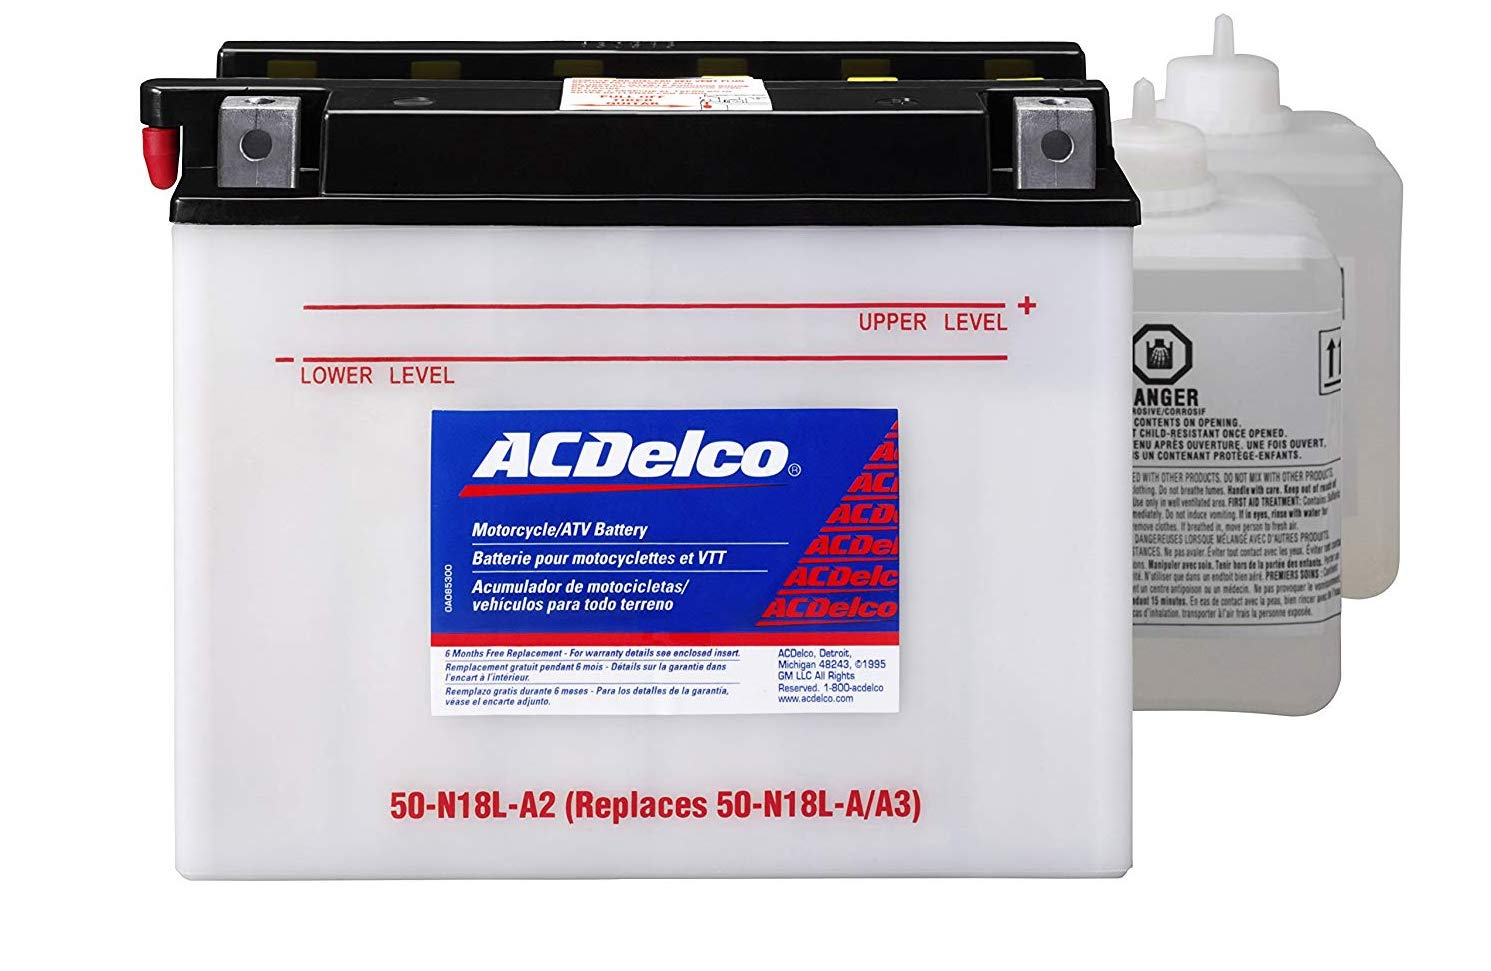 ACDelco conventional lead acid battery